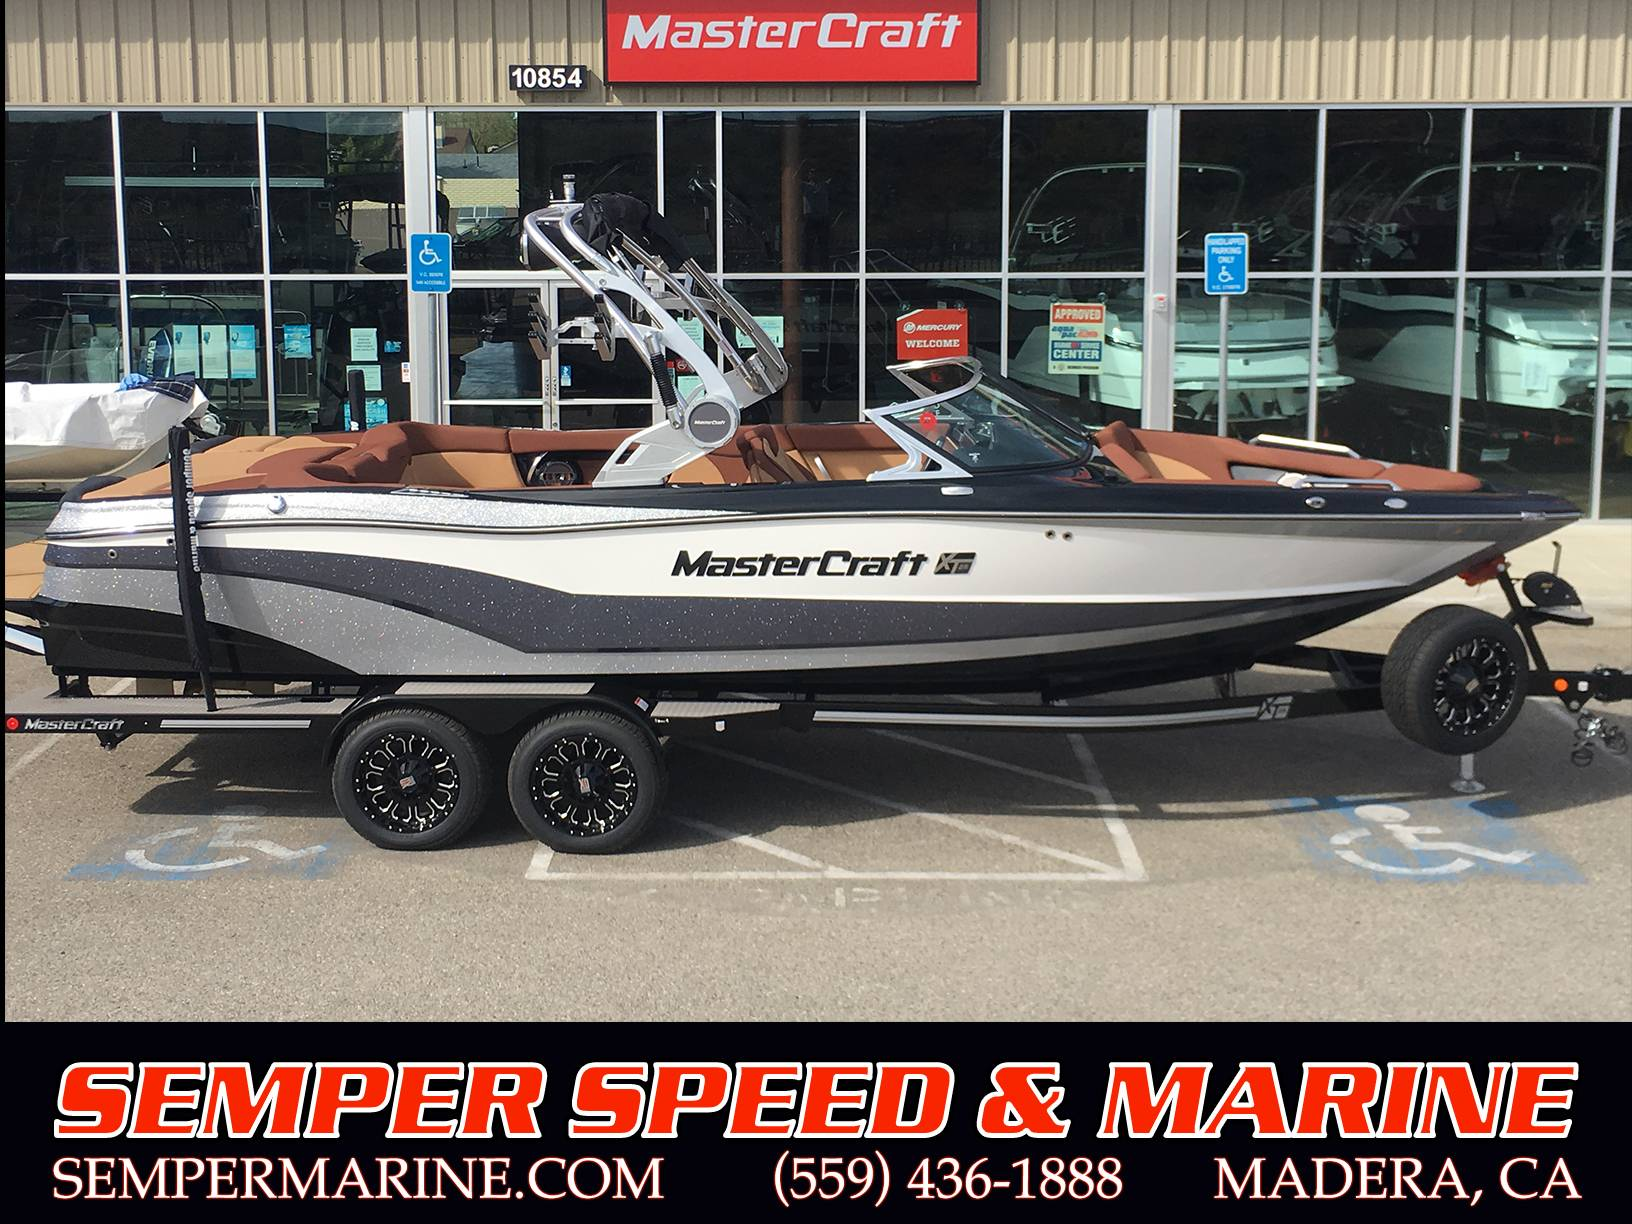 2018 Mastercraft XT25 in Madera, California - Photo 1